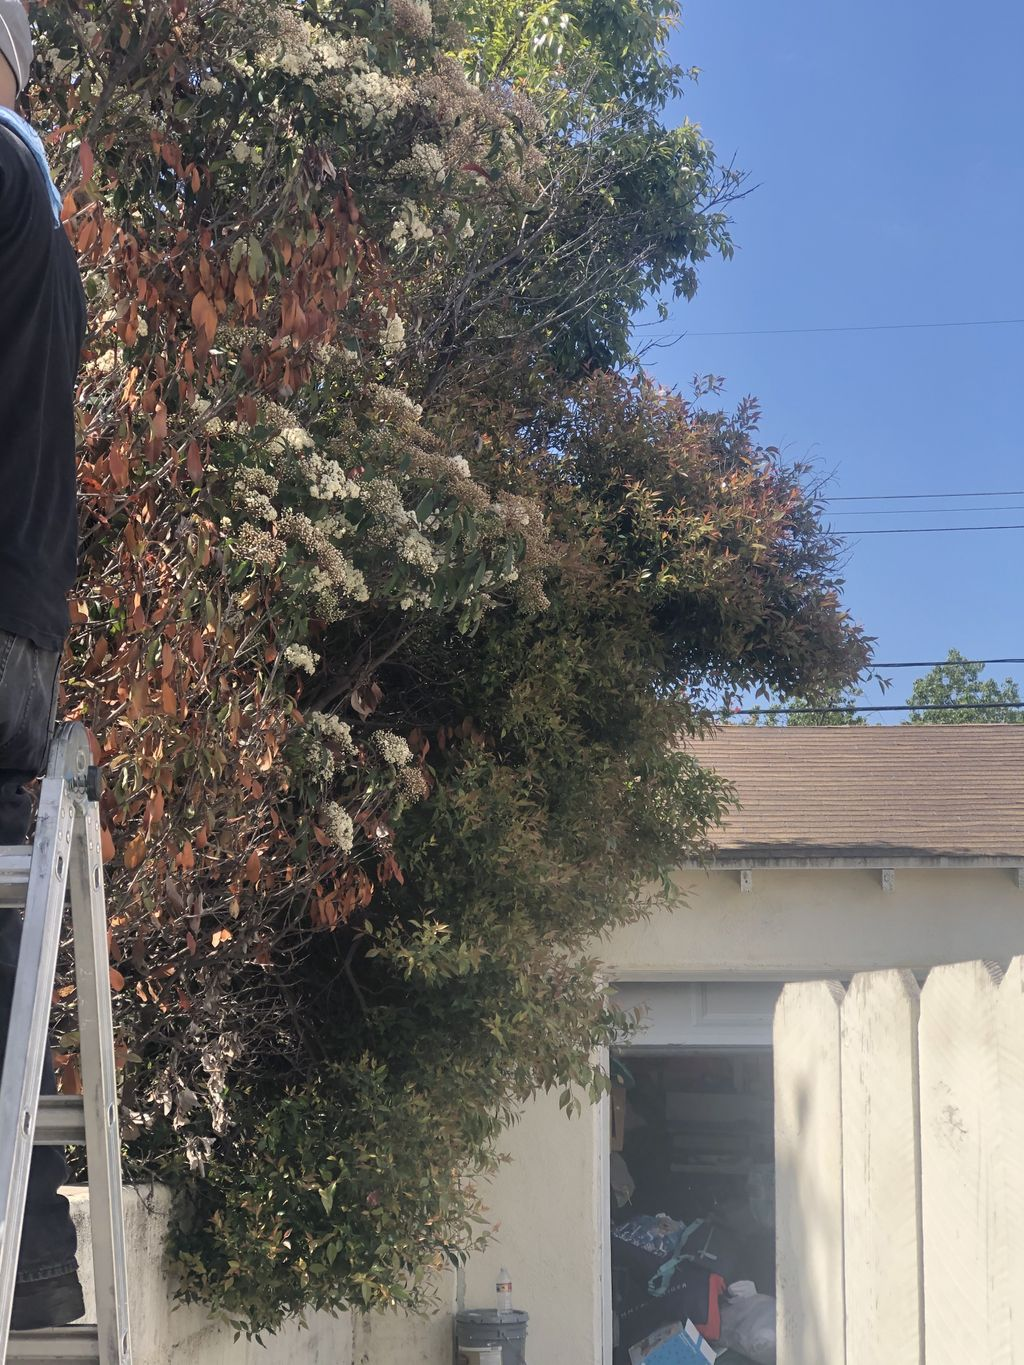 Trimming hedges back against wall